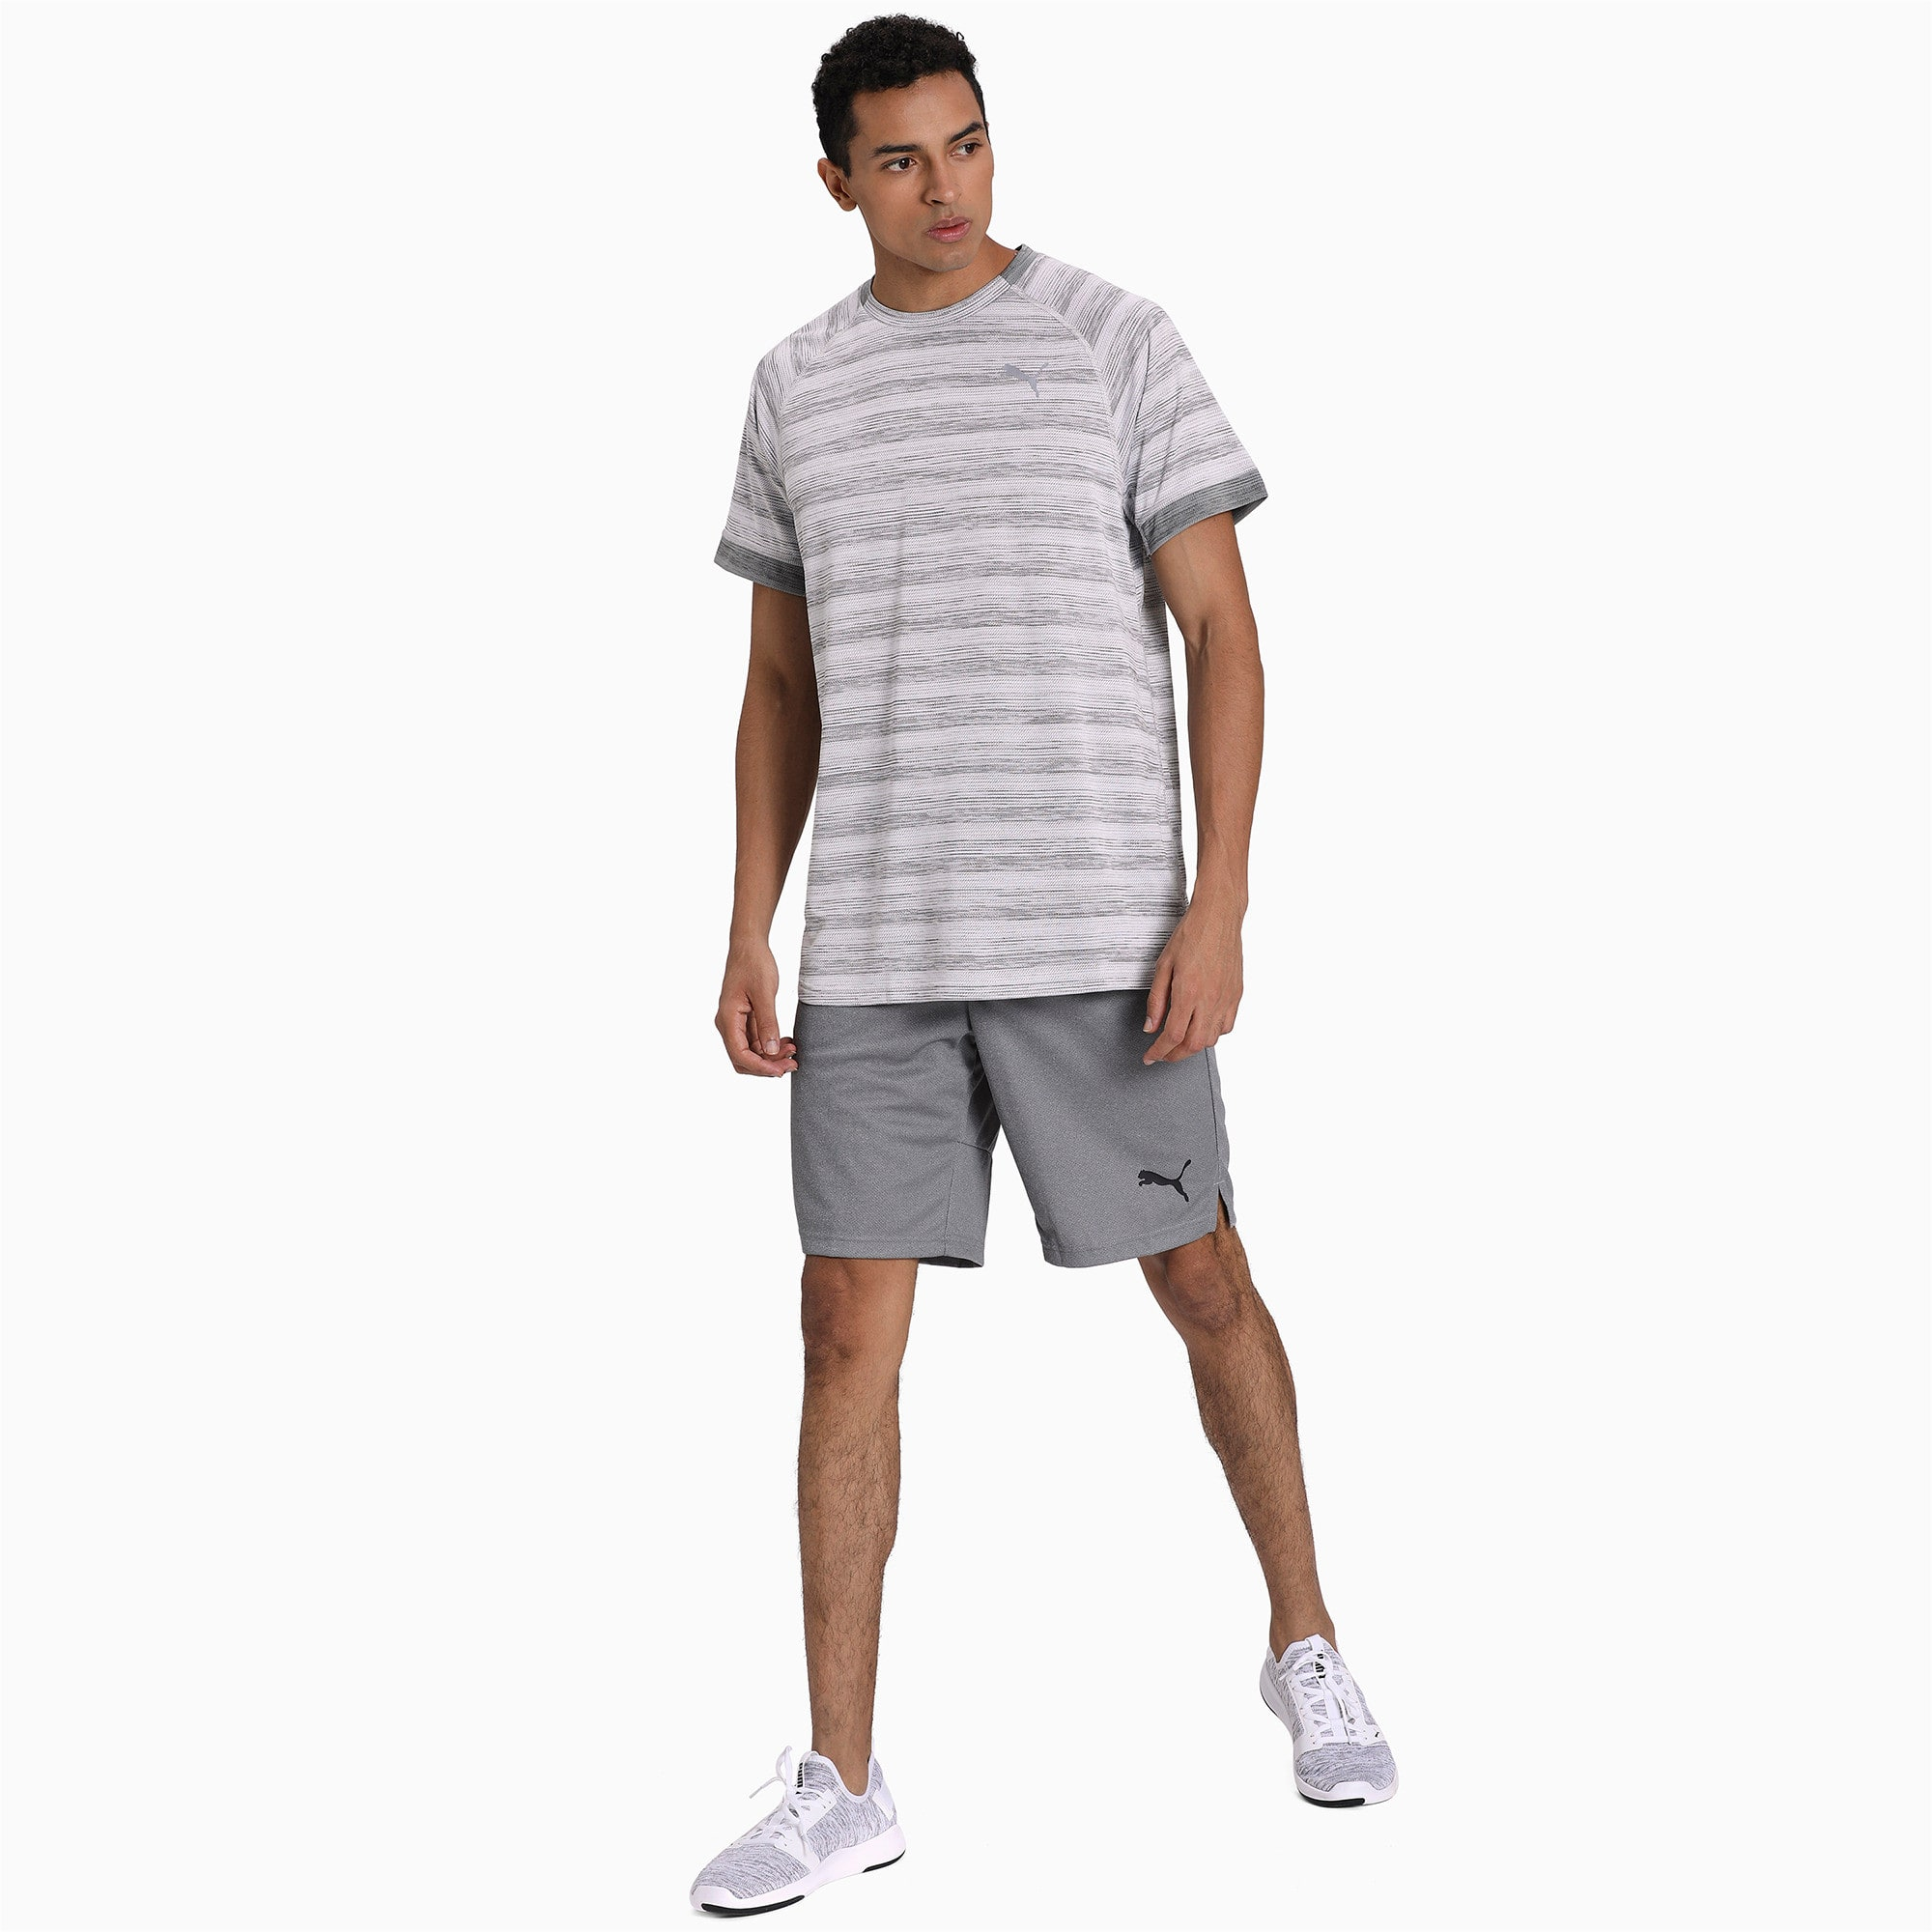 Thumbnail 3 of Get Fast THERMO R+ Men's Running Tee, White Heather-Med Gray Hthr, medium-IND